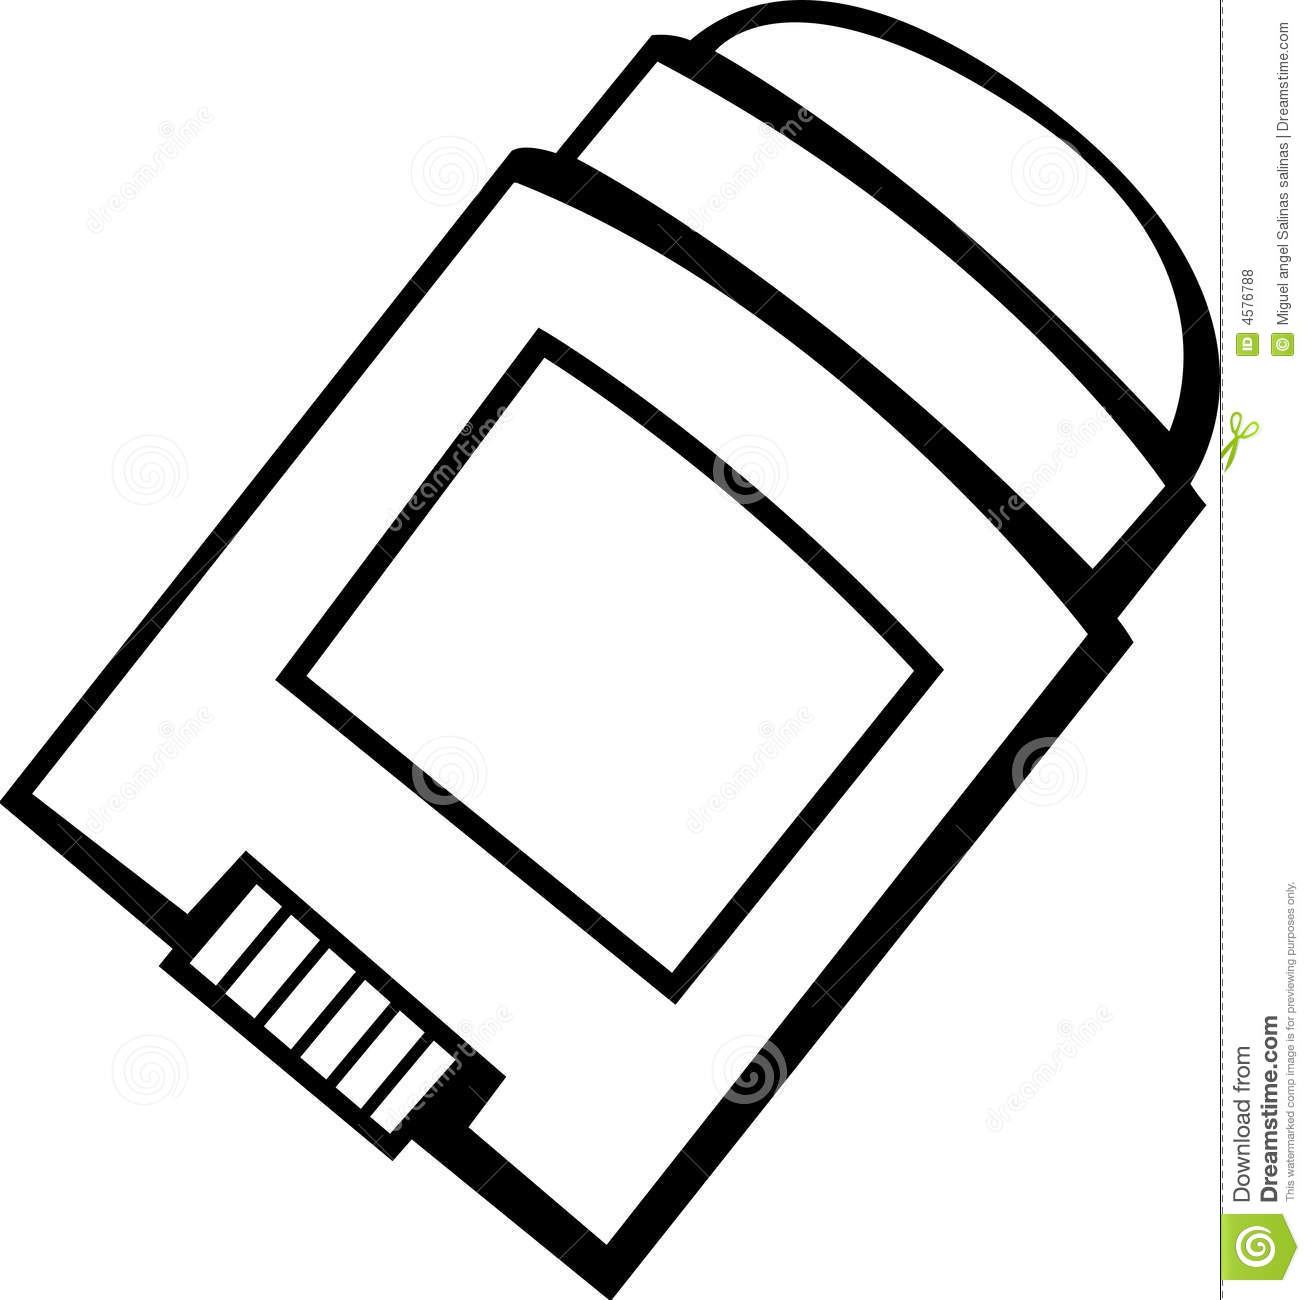 Deodorant clipart black and white banner free library Deodorant clipart 1 » Clipart Station banner free library